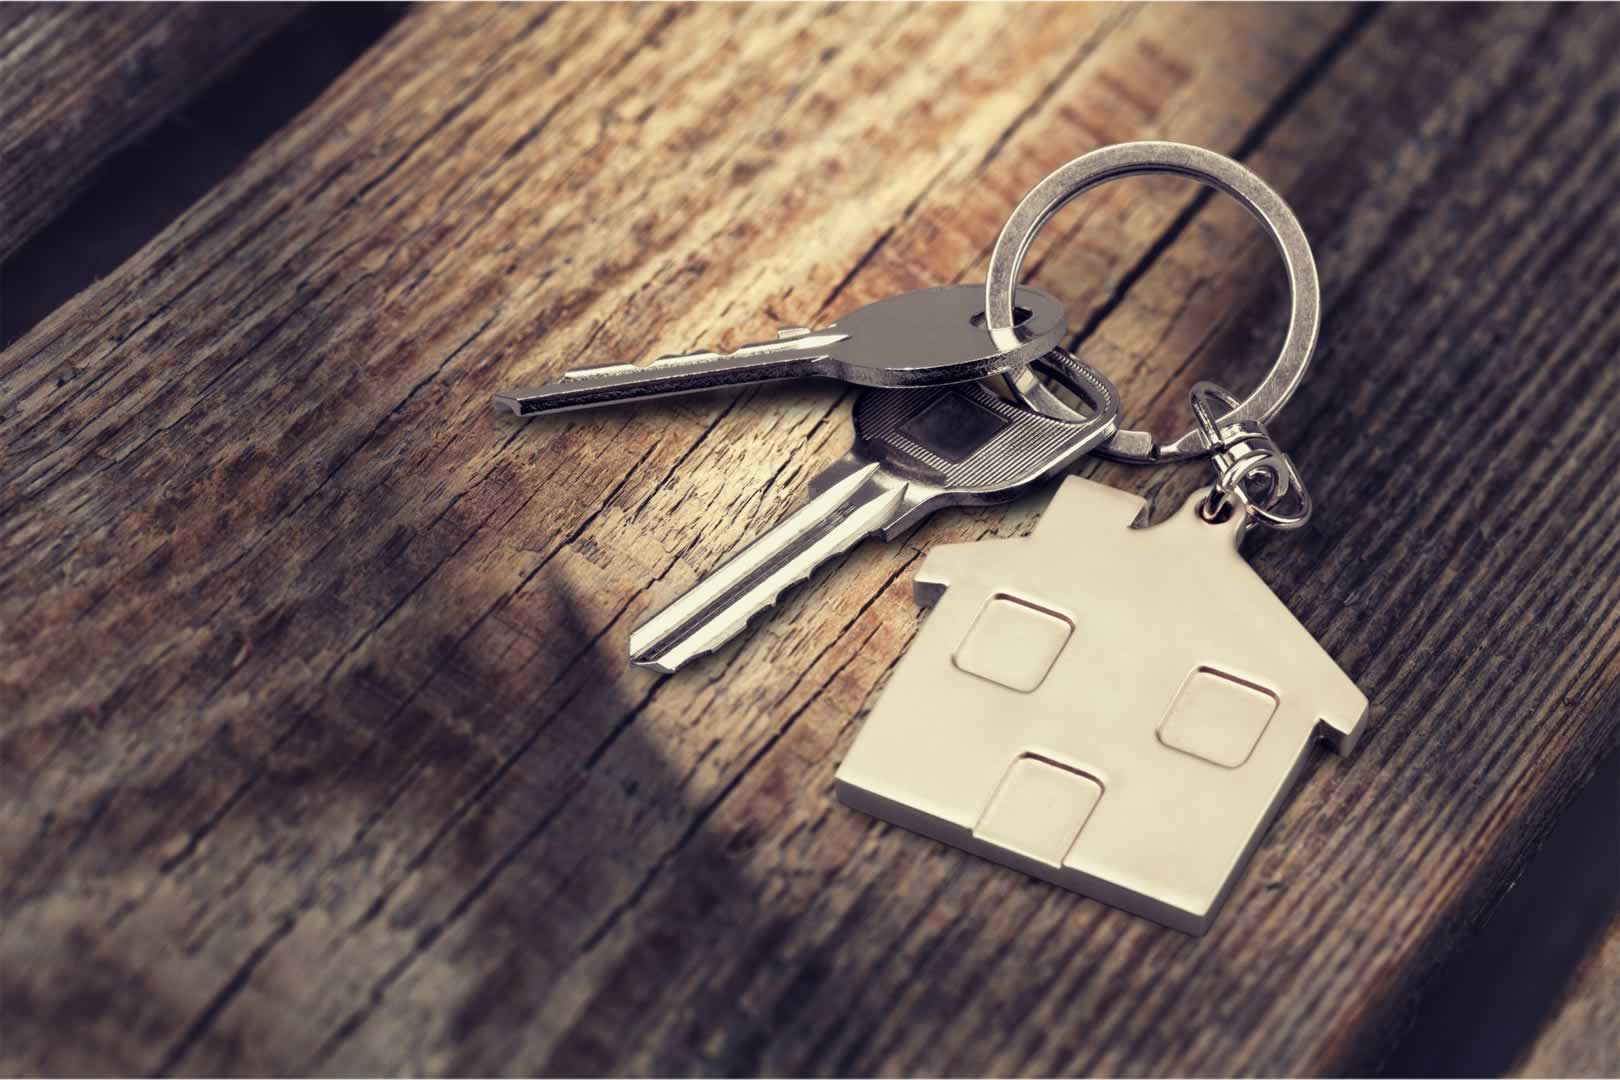 How often do people move property in the local area?